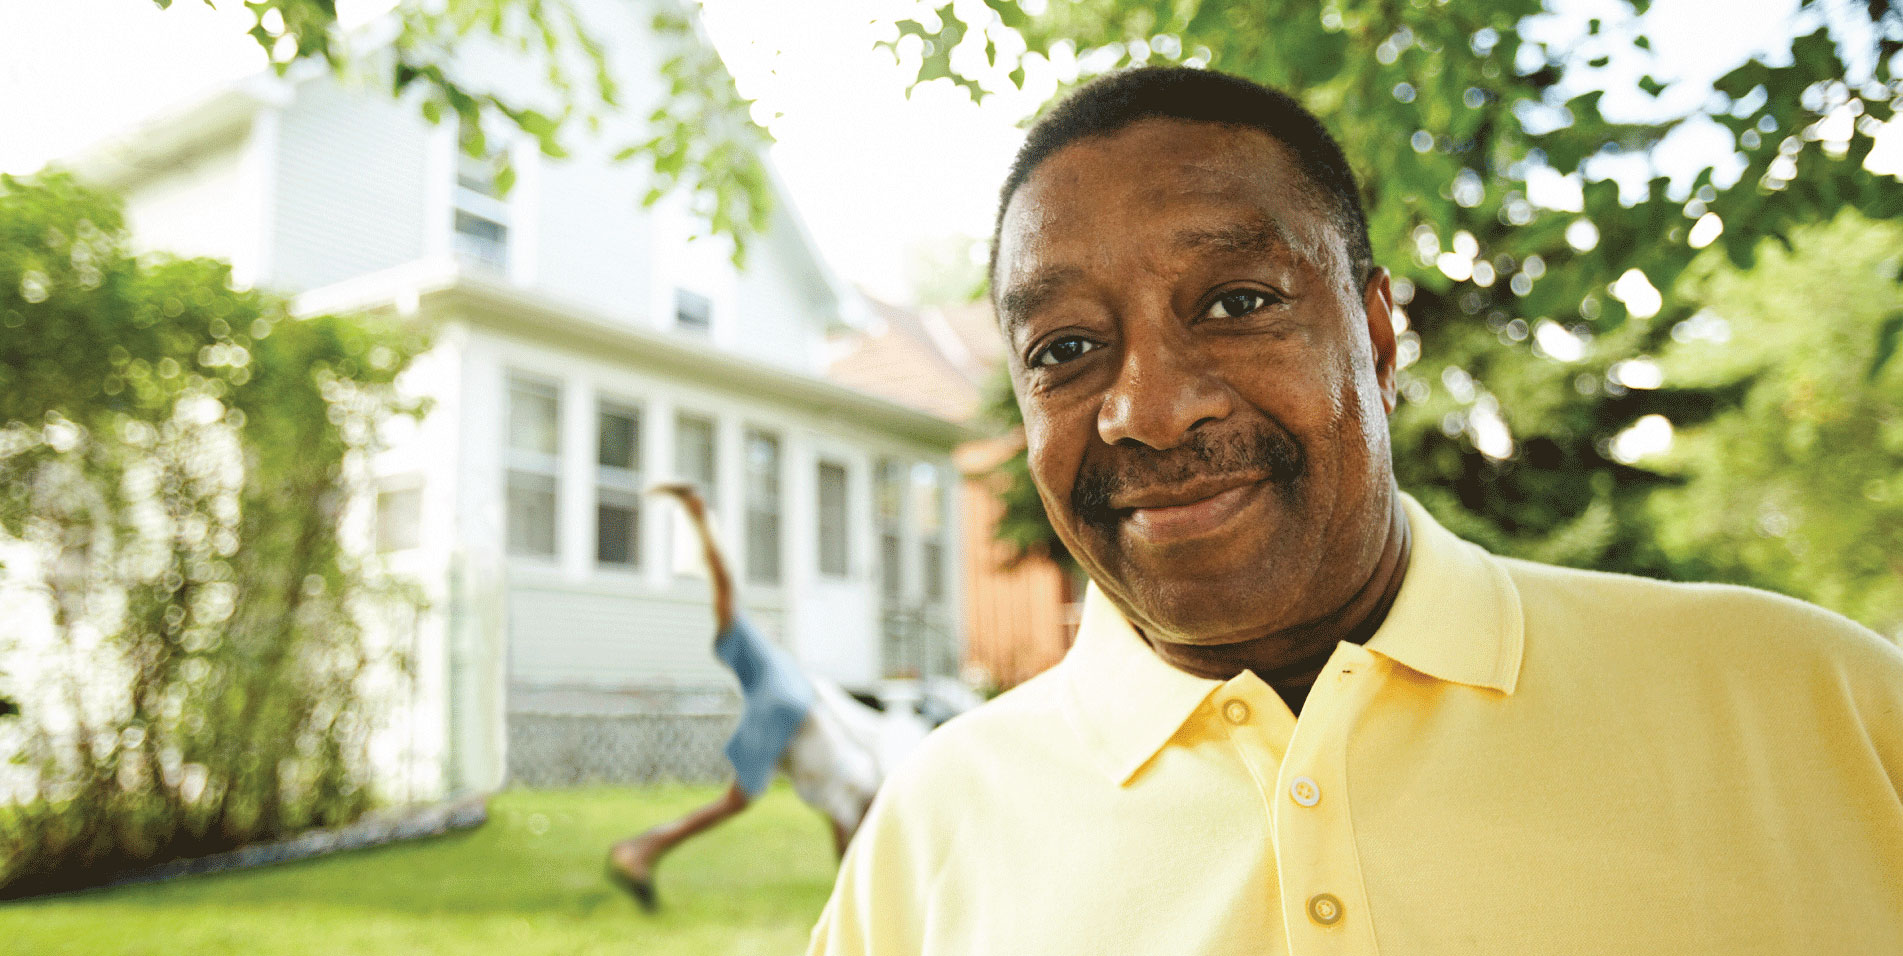 Local retiree outside his home